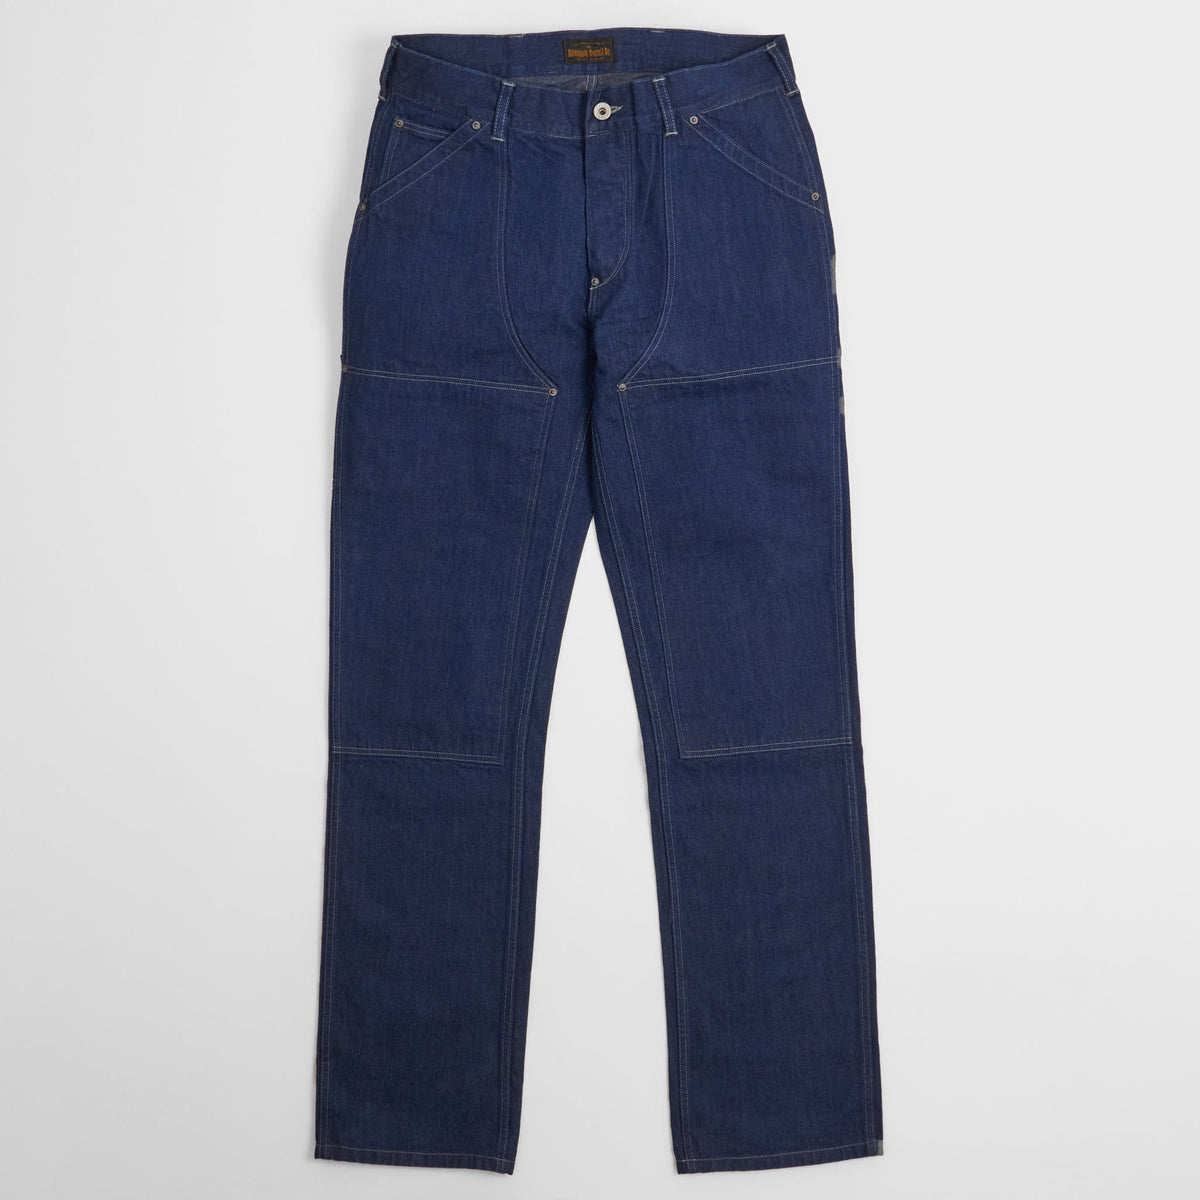 Stevenson Overall CO. Carpenter Fatigue Work Pants